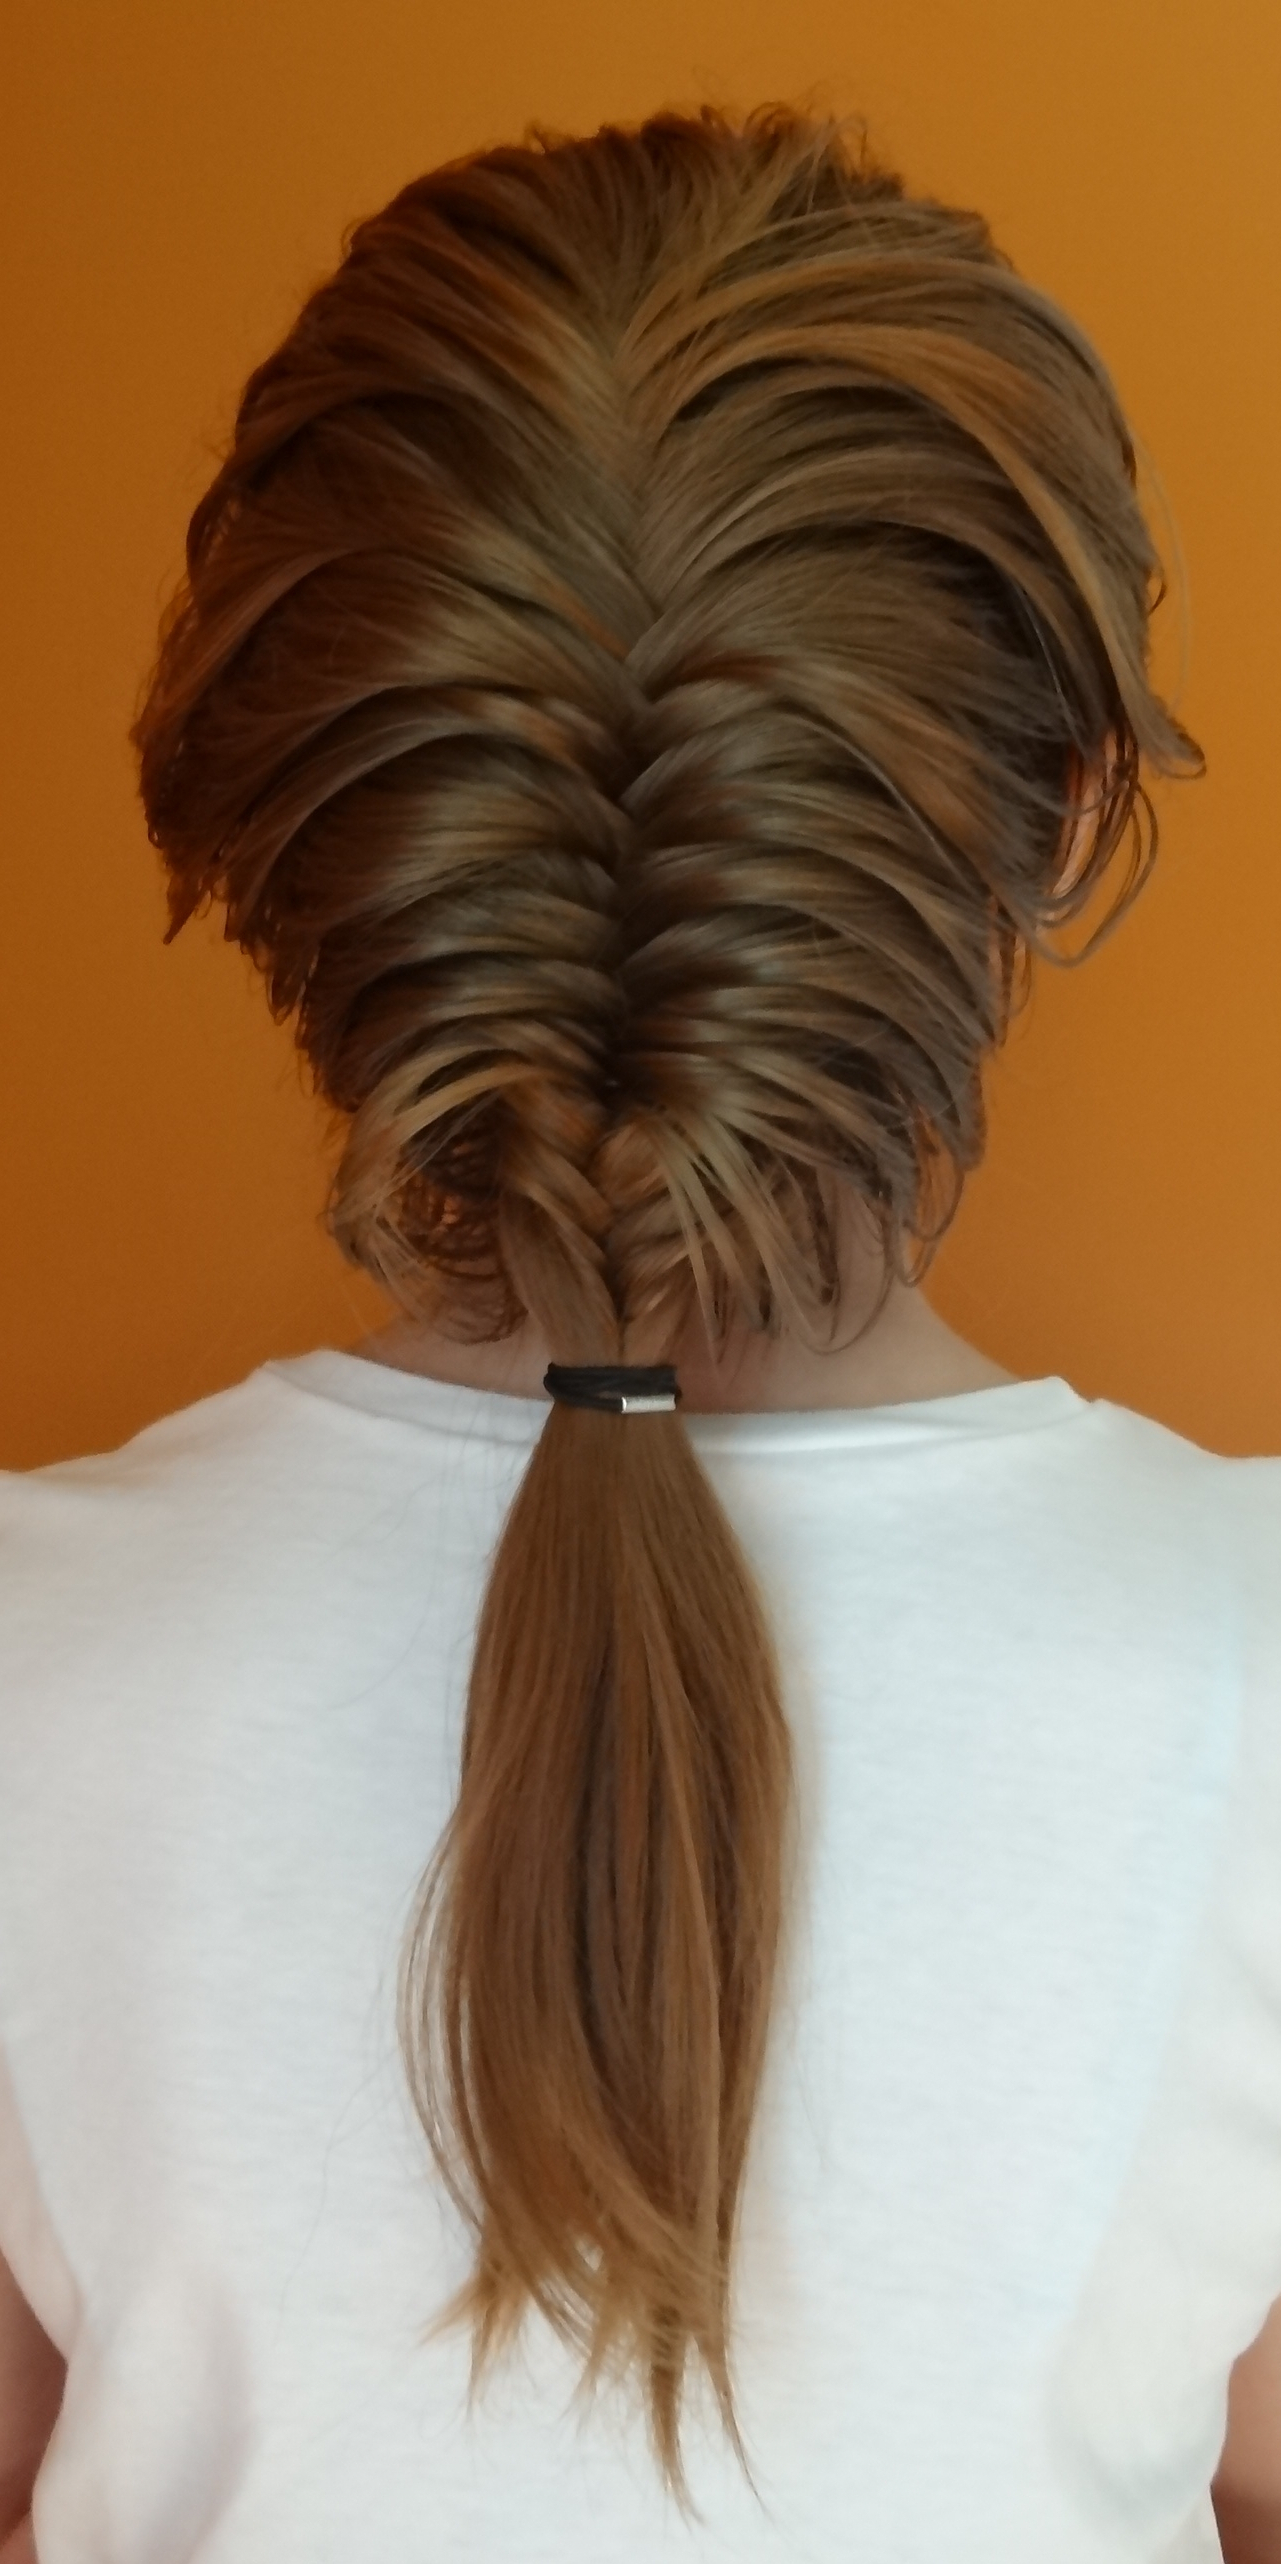 Well Known Curvy Braid Hairstyles And Long Tails Regarding 45 Easy Braid Hairstyles With How To Do Them – Haircuts (Gallery 8 of 20)